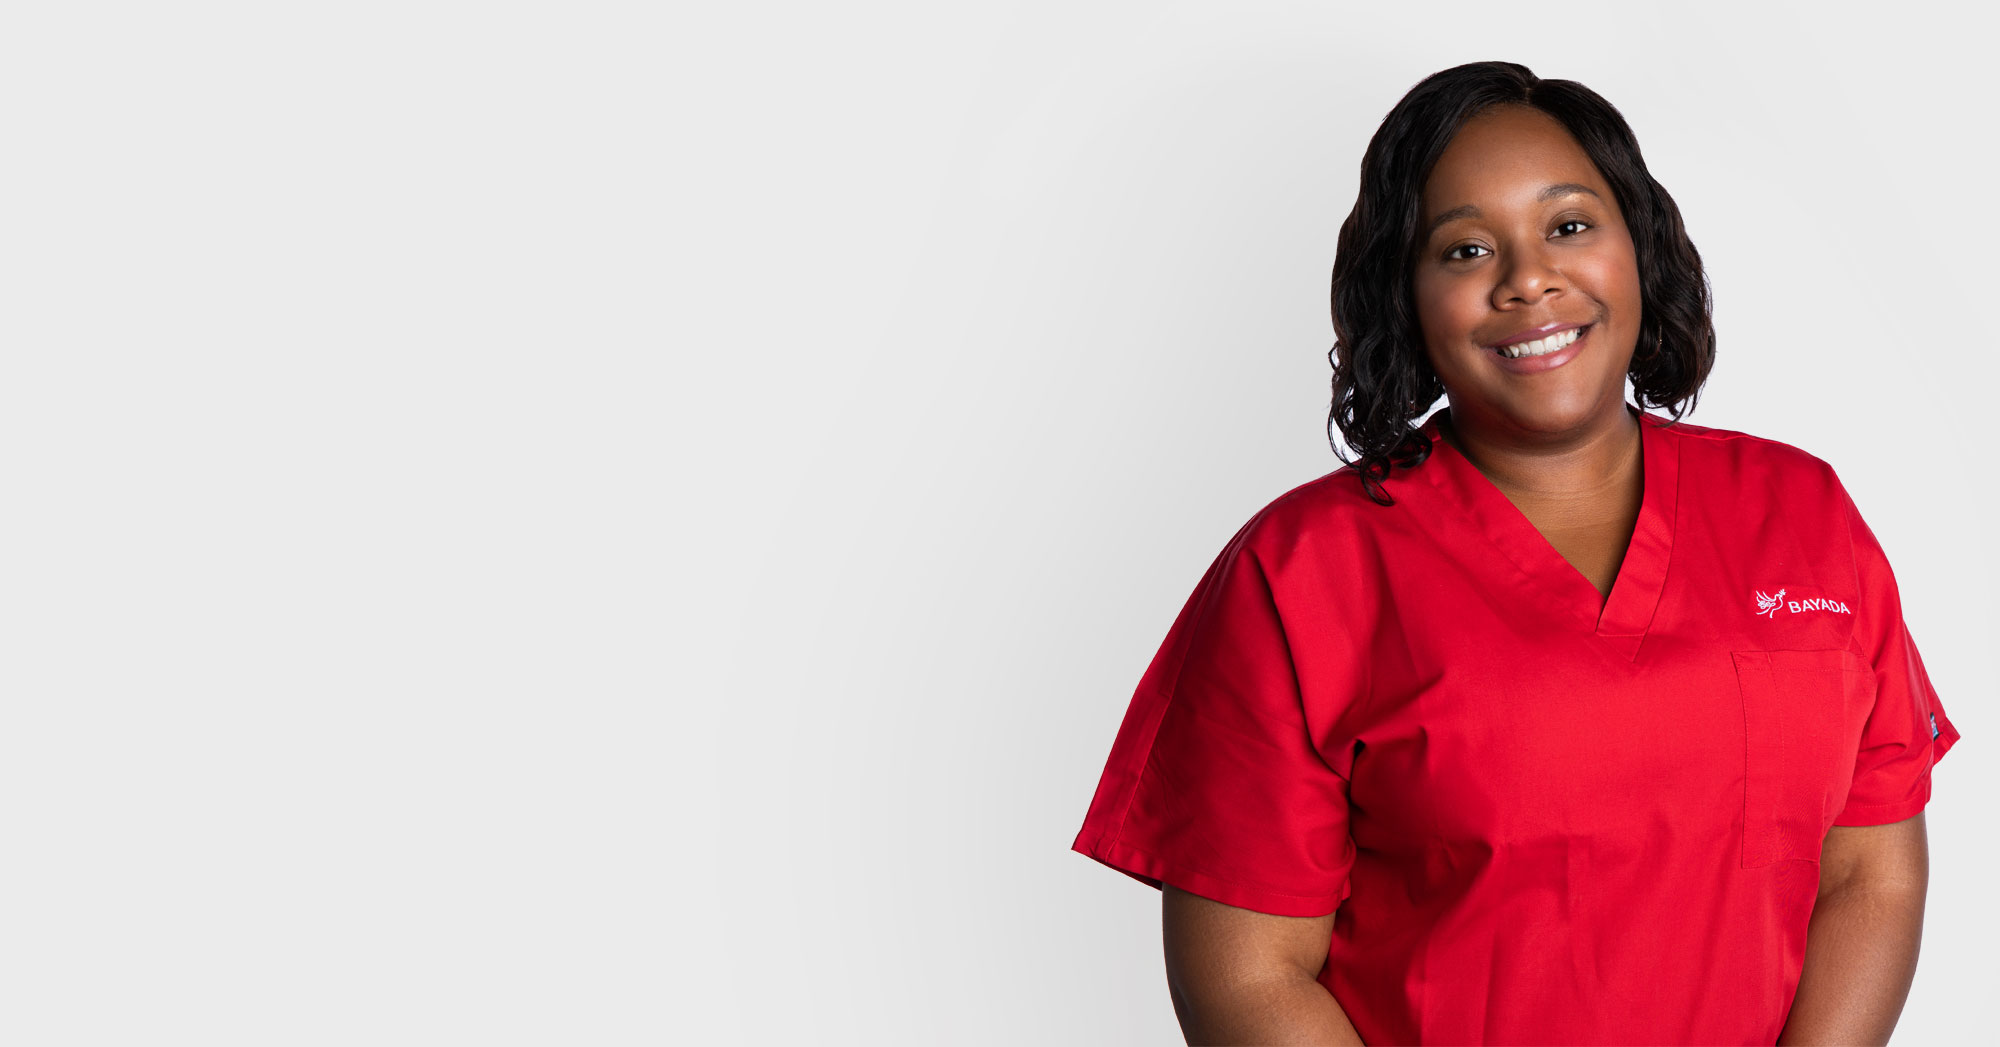 No Experience Required: Loving the LPN Life